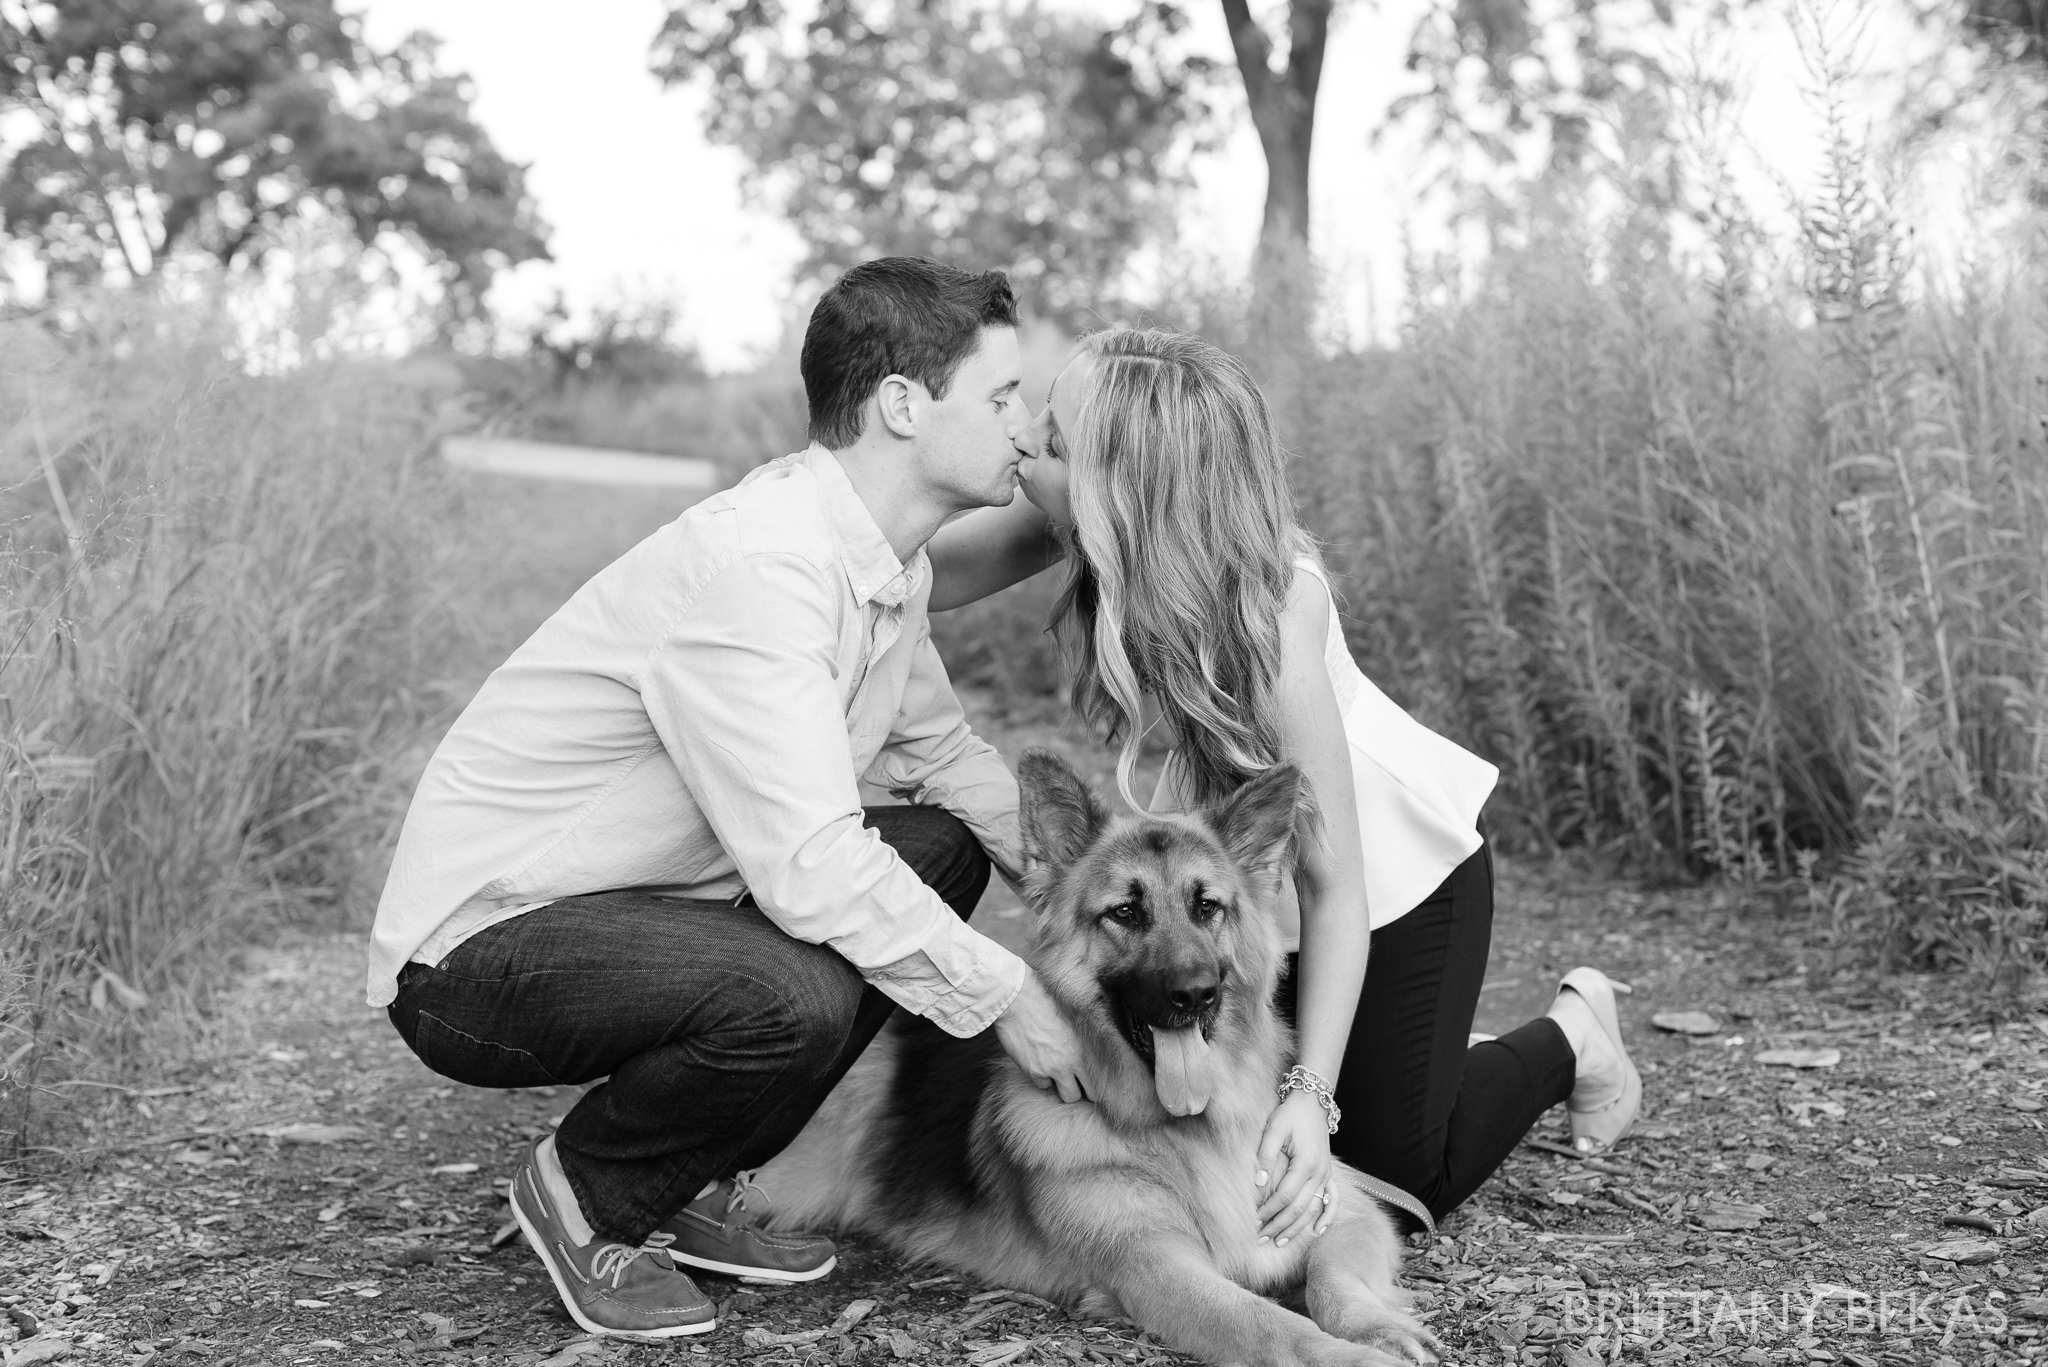 lincoln-park-chicago-engagement-photos-brittany-bekas-photography_0005